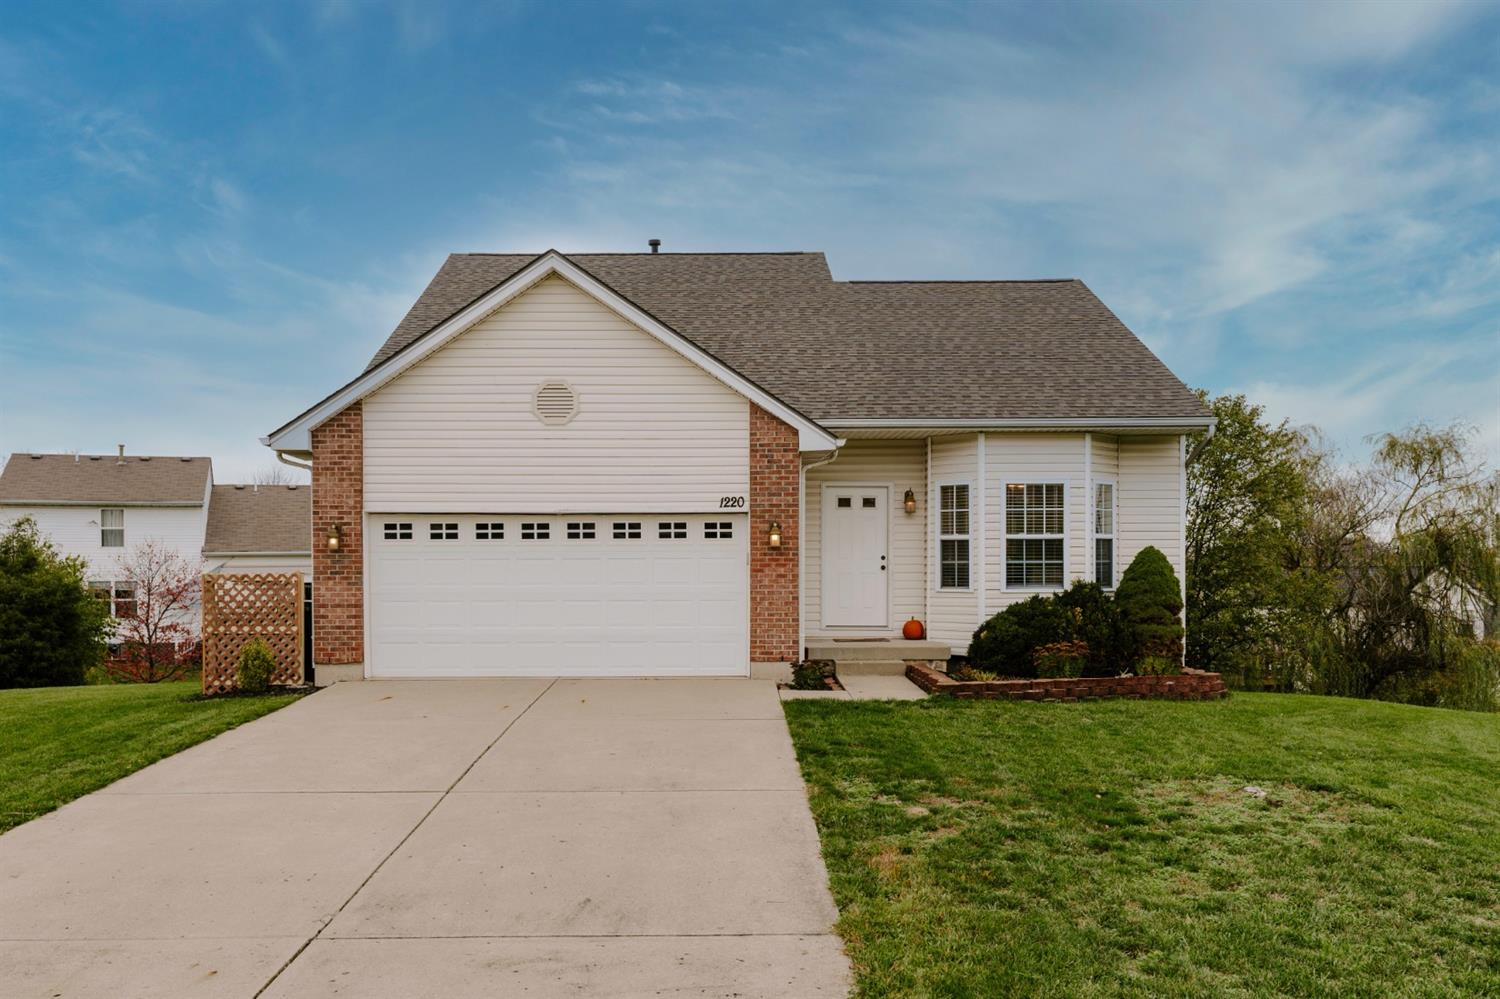 Property for sale at 1220 Holly Forge Drive, Lebanon,  Ohio 45036